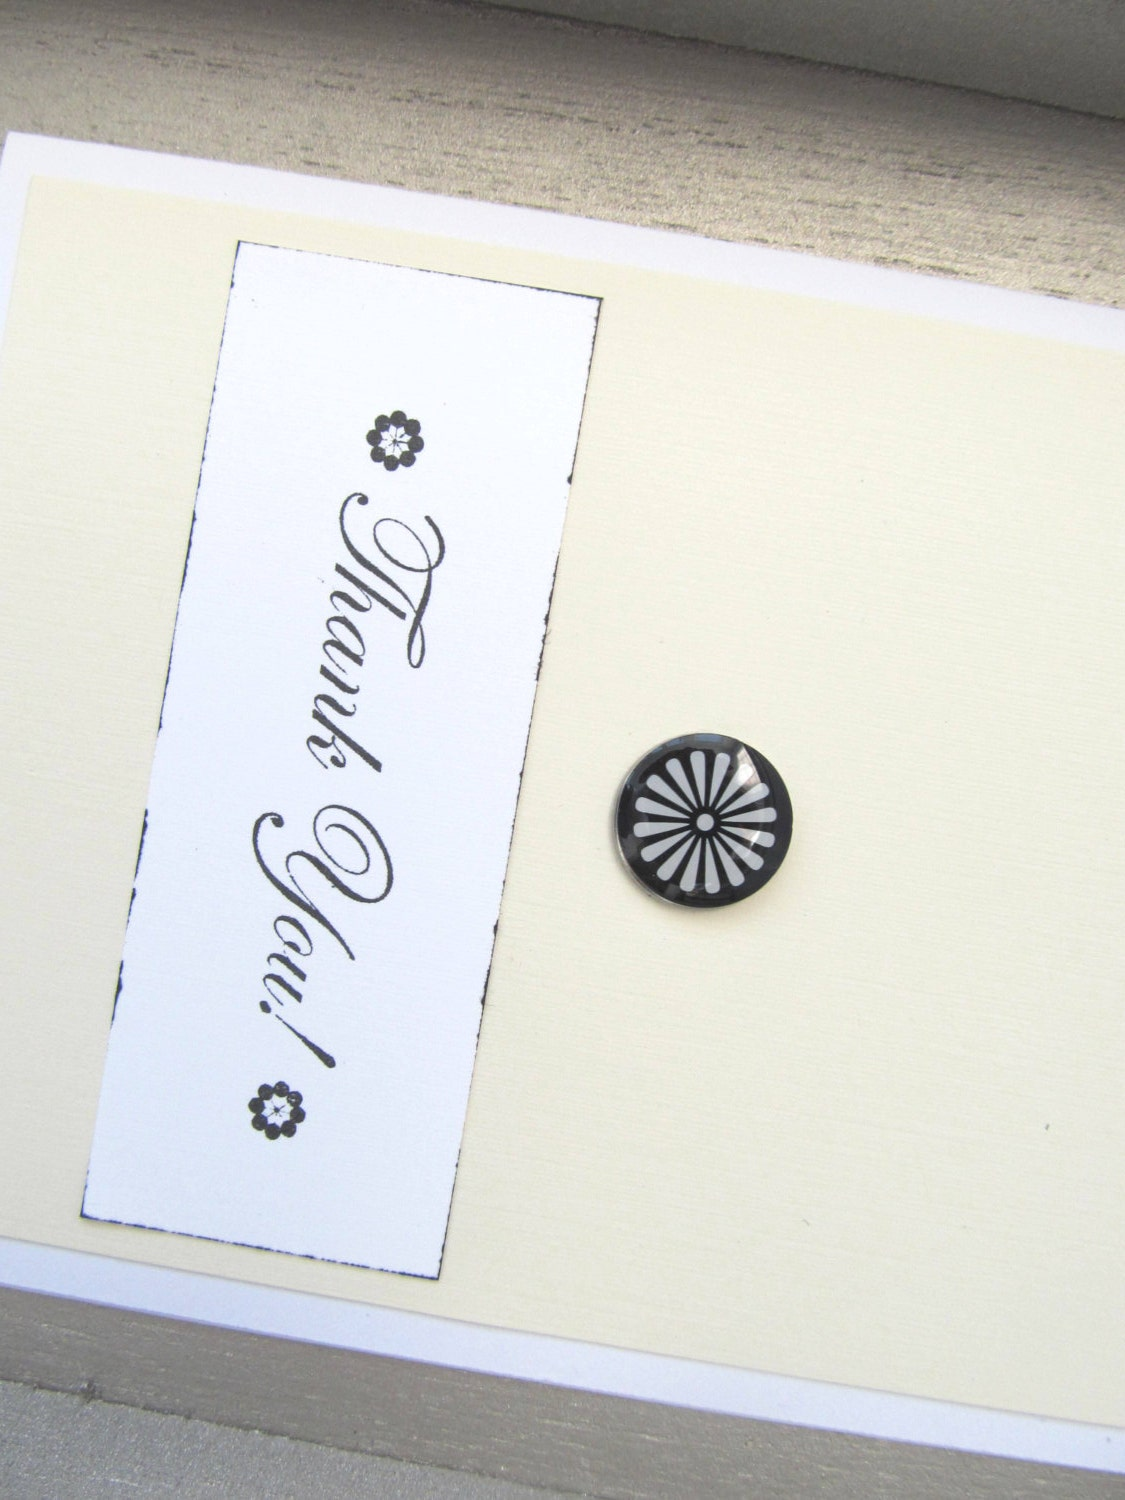 Thank You Card - Handmade Card - Hand Stamped Card - Black and White Accents - Pale Yellow - Modern Look - Simple and Clean Style - PrettyByrdDesigns